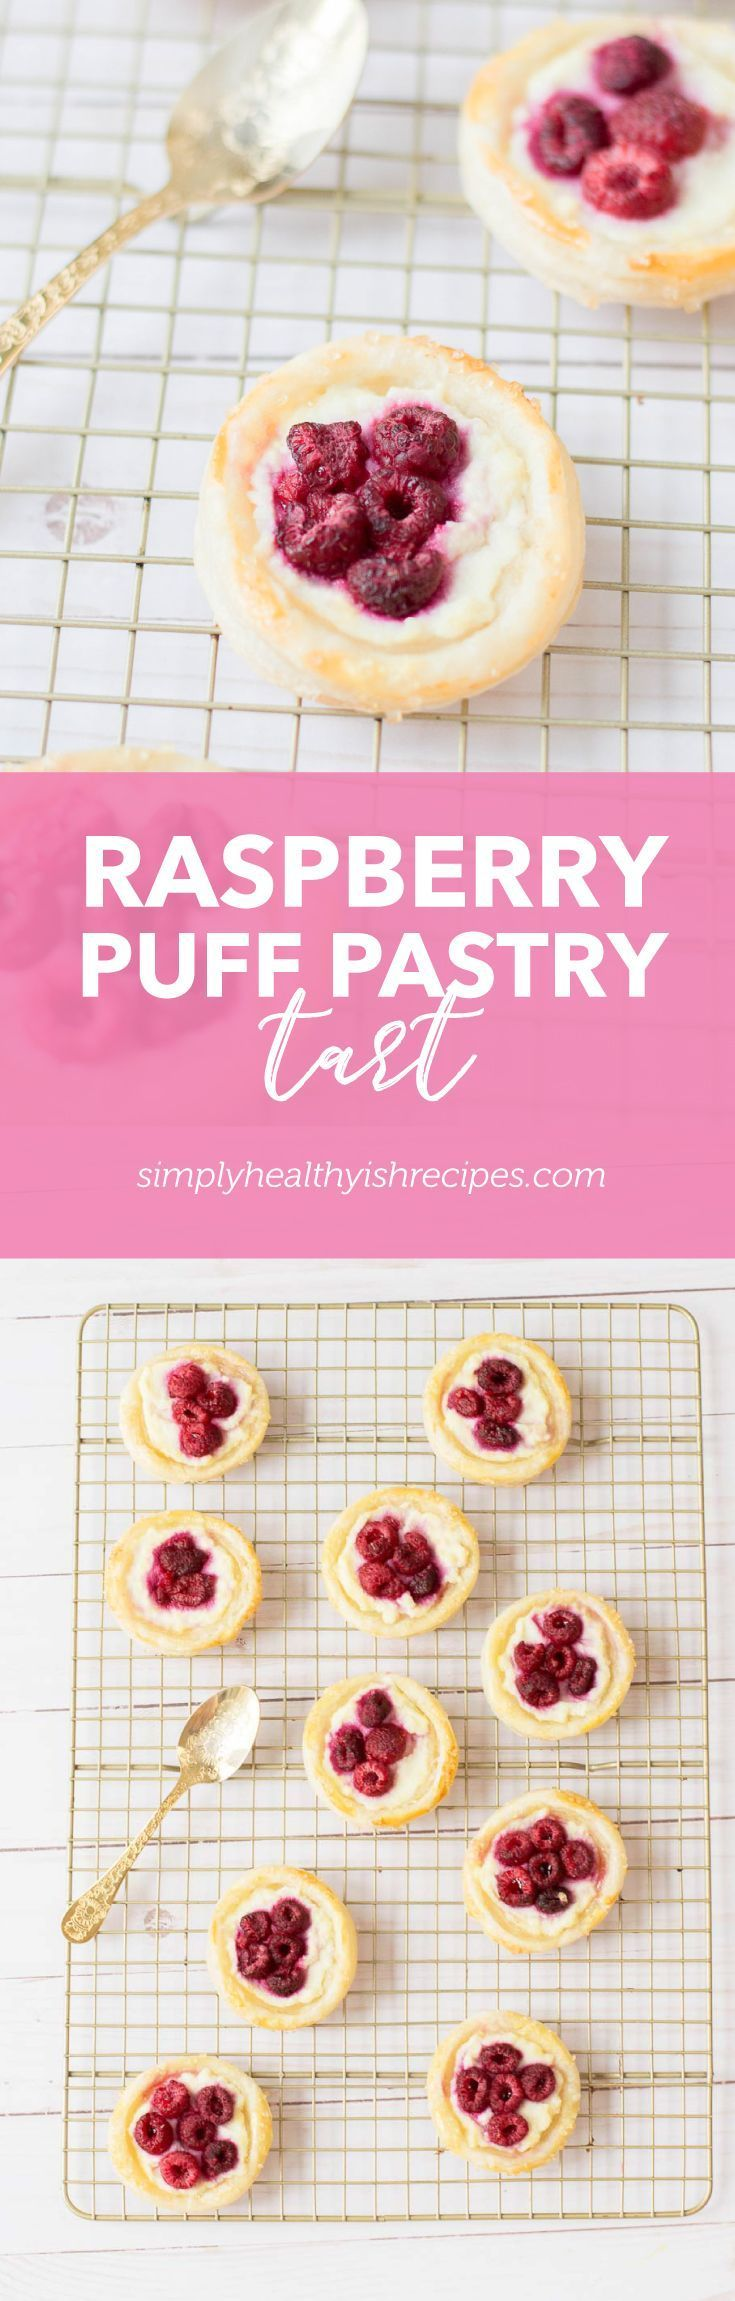 Puff pastry danish or raspberry danish pastry. Whatever you call this, this easy tart is sure to impress the guests on any occasions — crispy, buttery, flaky puff pastry tart makes an easy summer dessert. #frozenpuffpastry